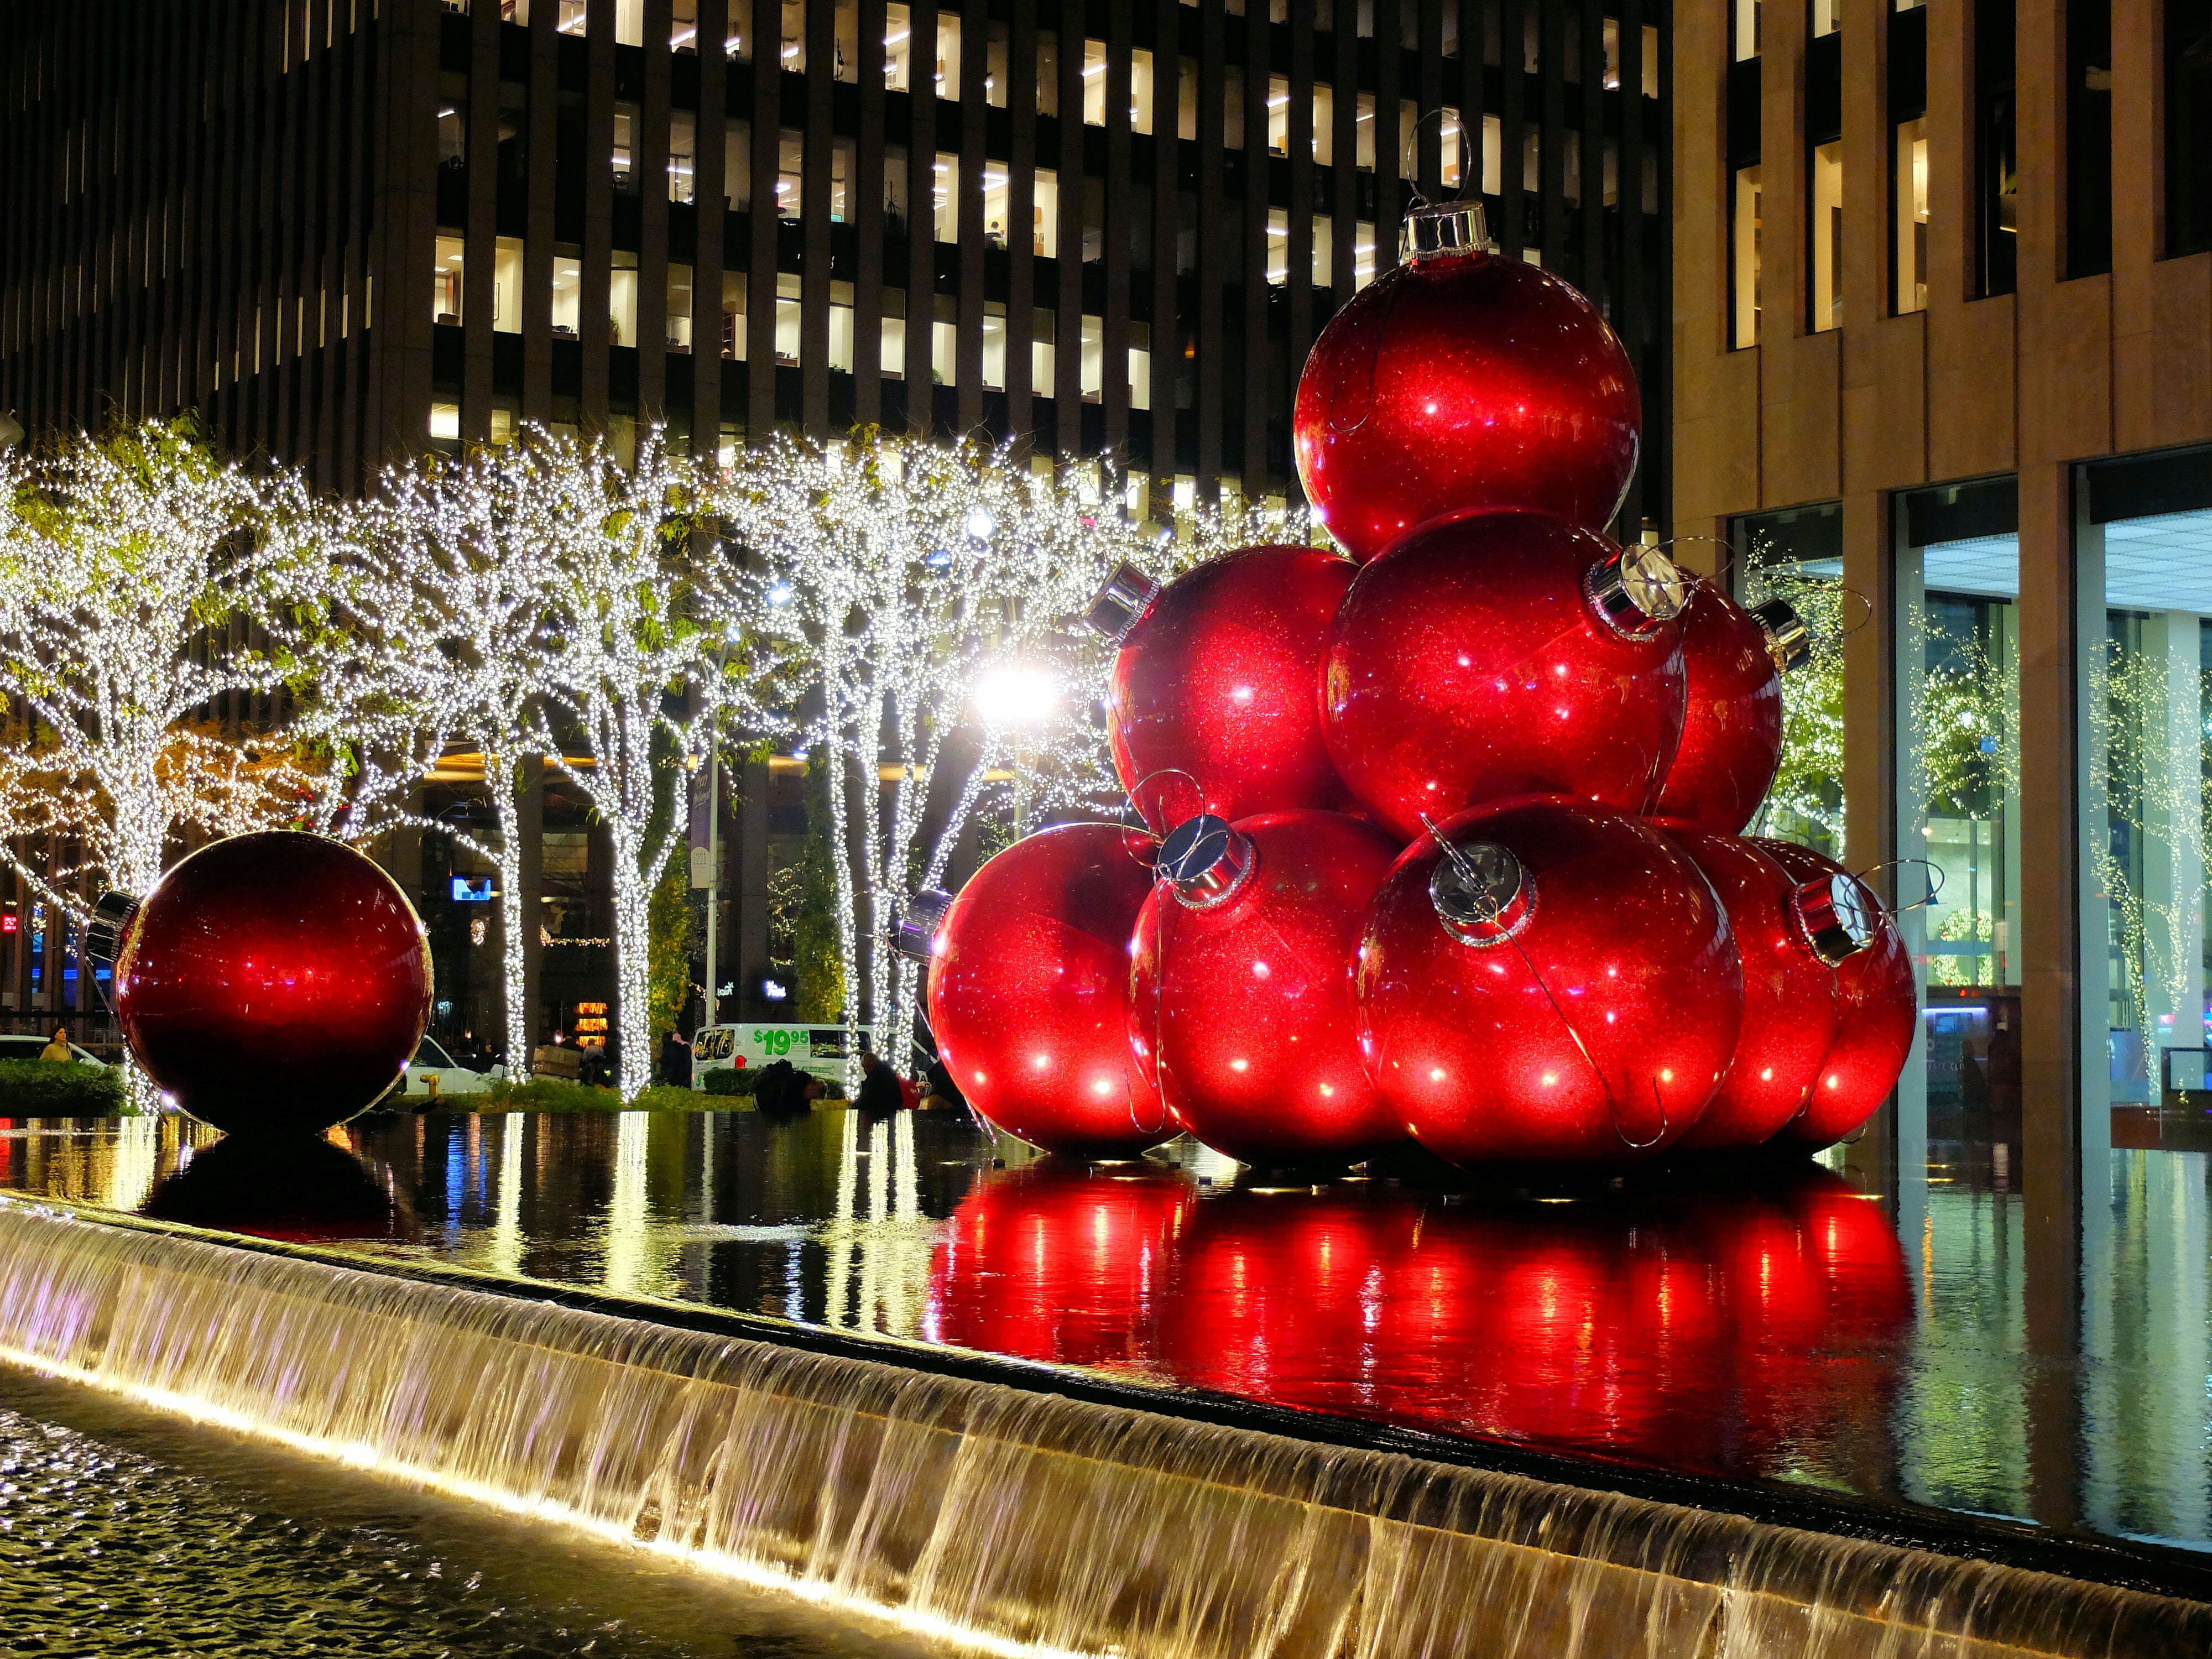 Christmas in New York – High Quality Wallpaper